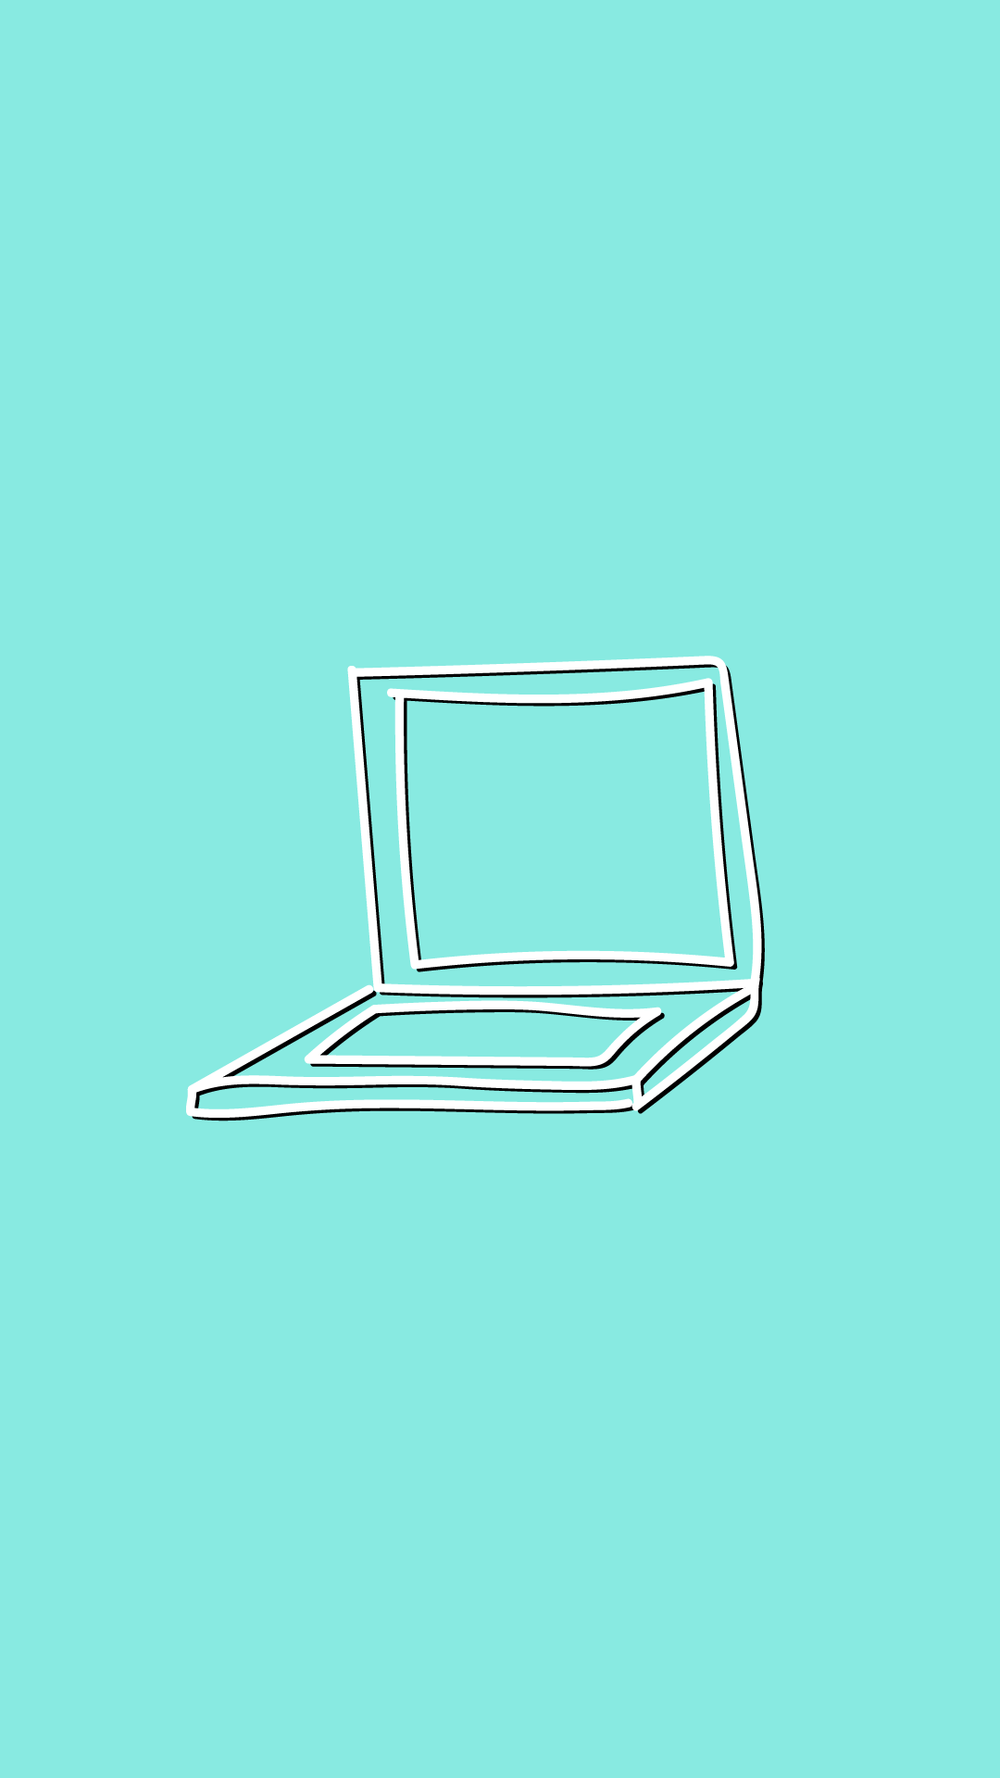 Laptop - Teal.png